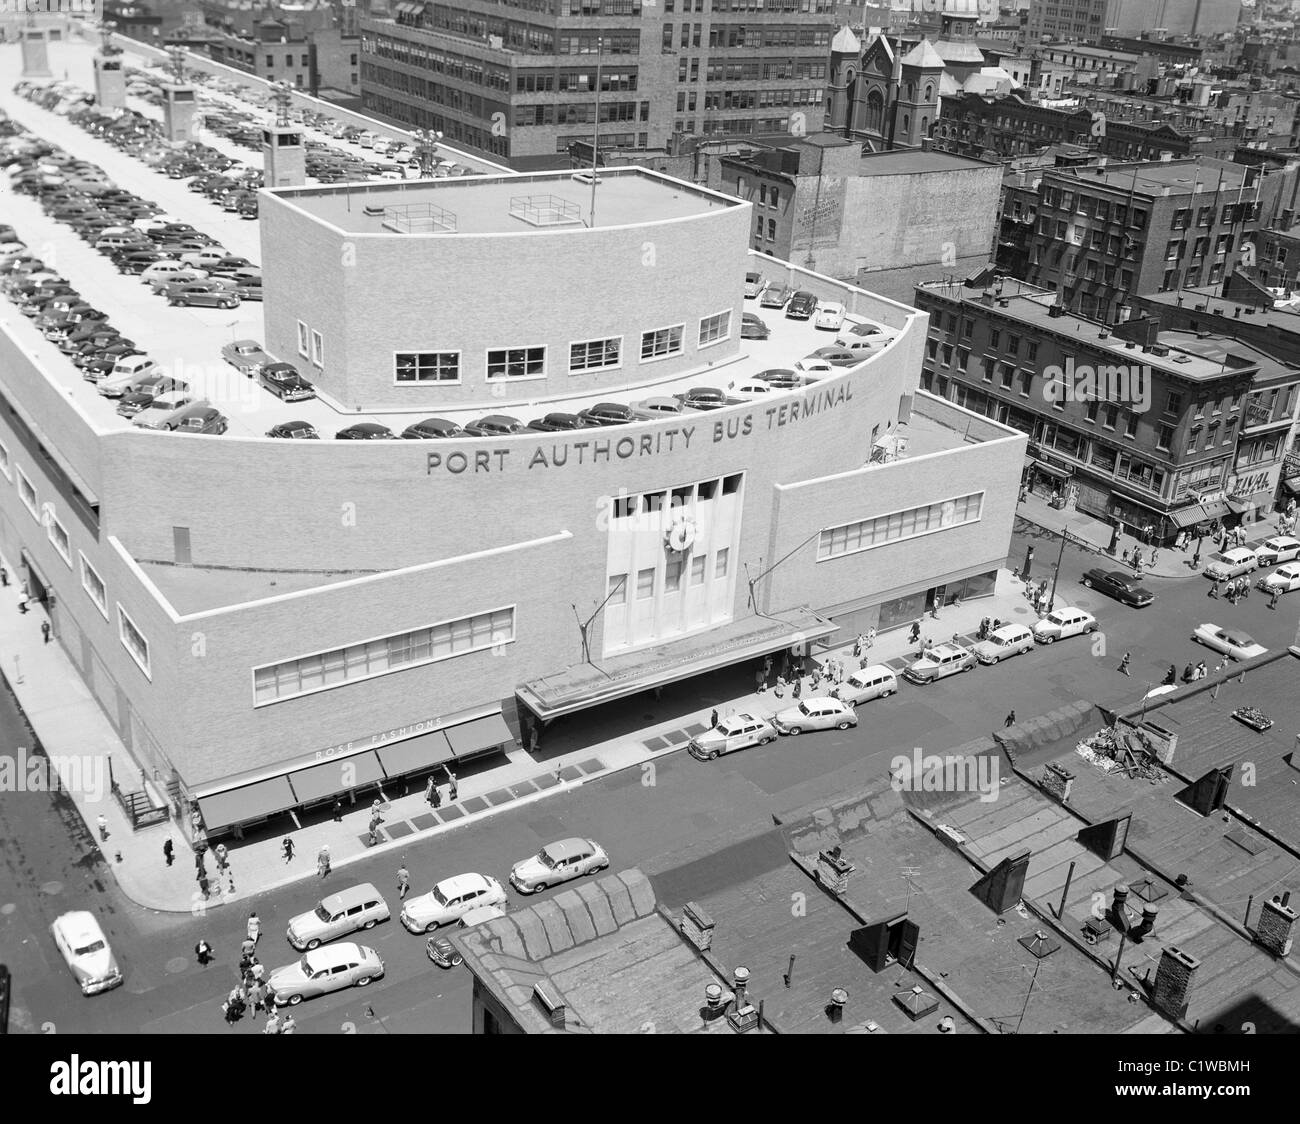 USA, New York State, New York City, View of Port Authority Bus Terminal showing parked cars on roof - Stock Image